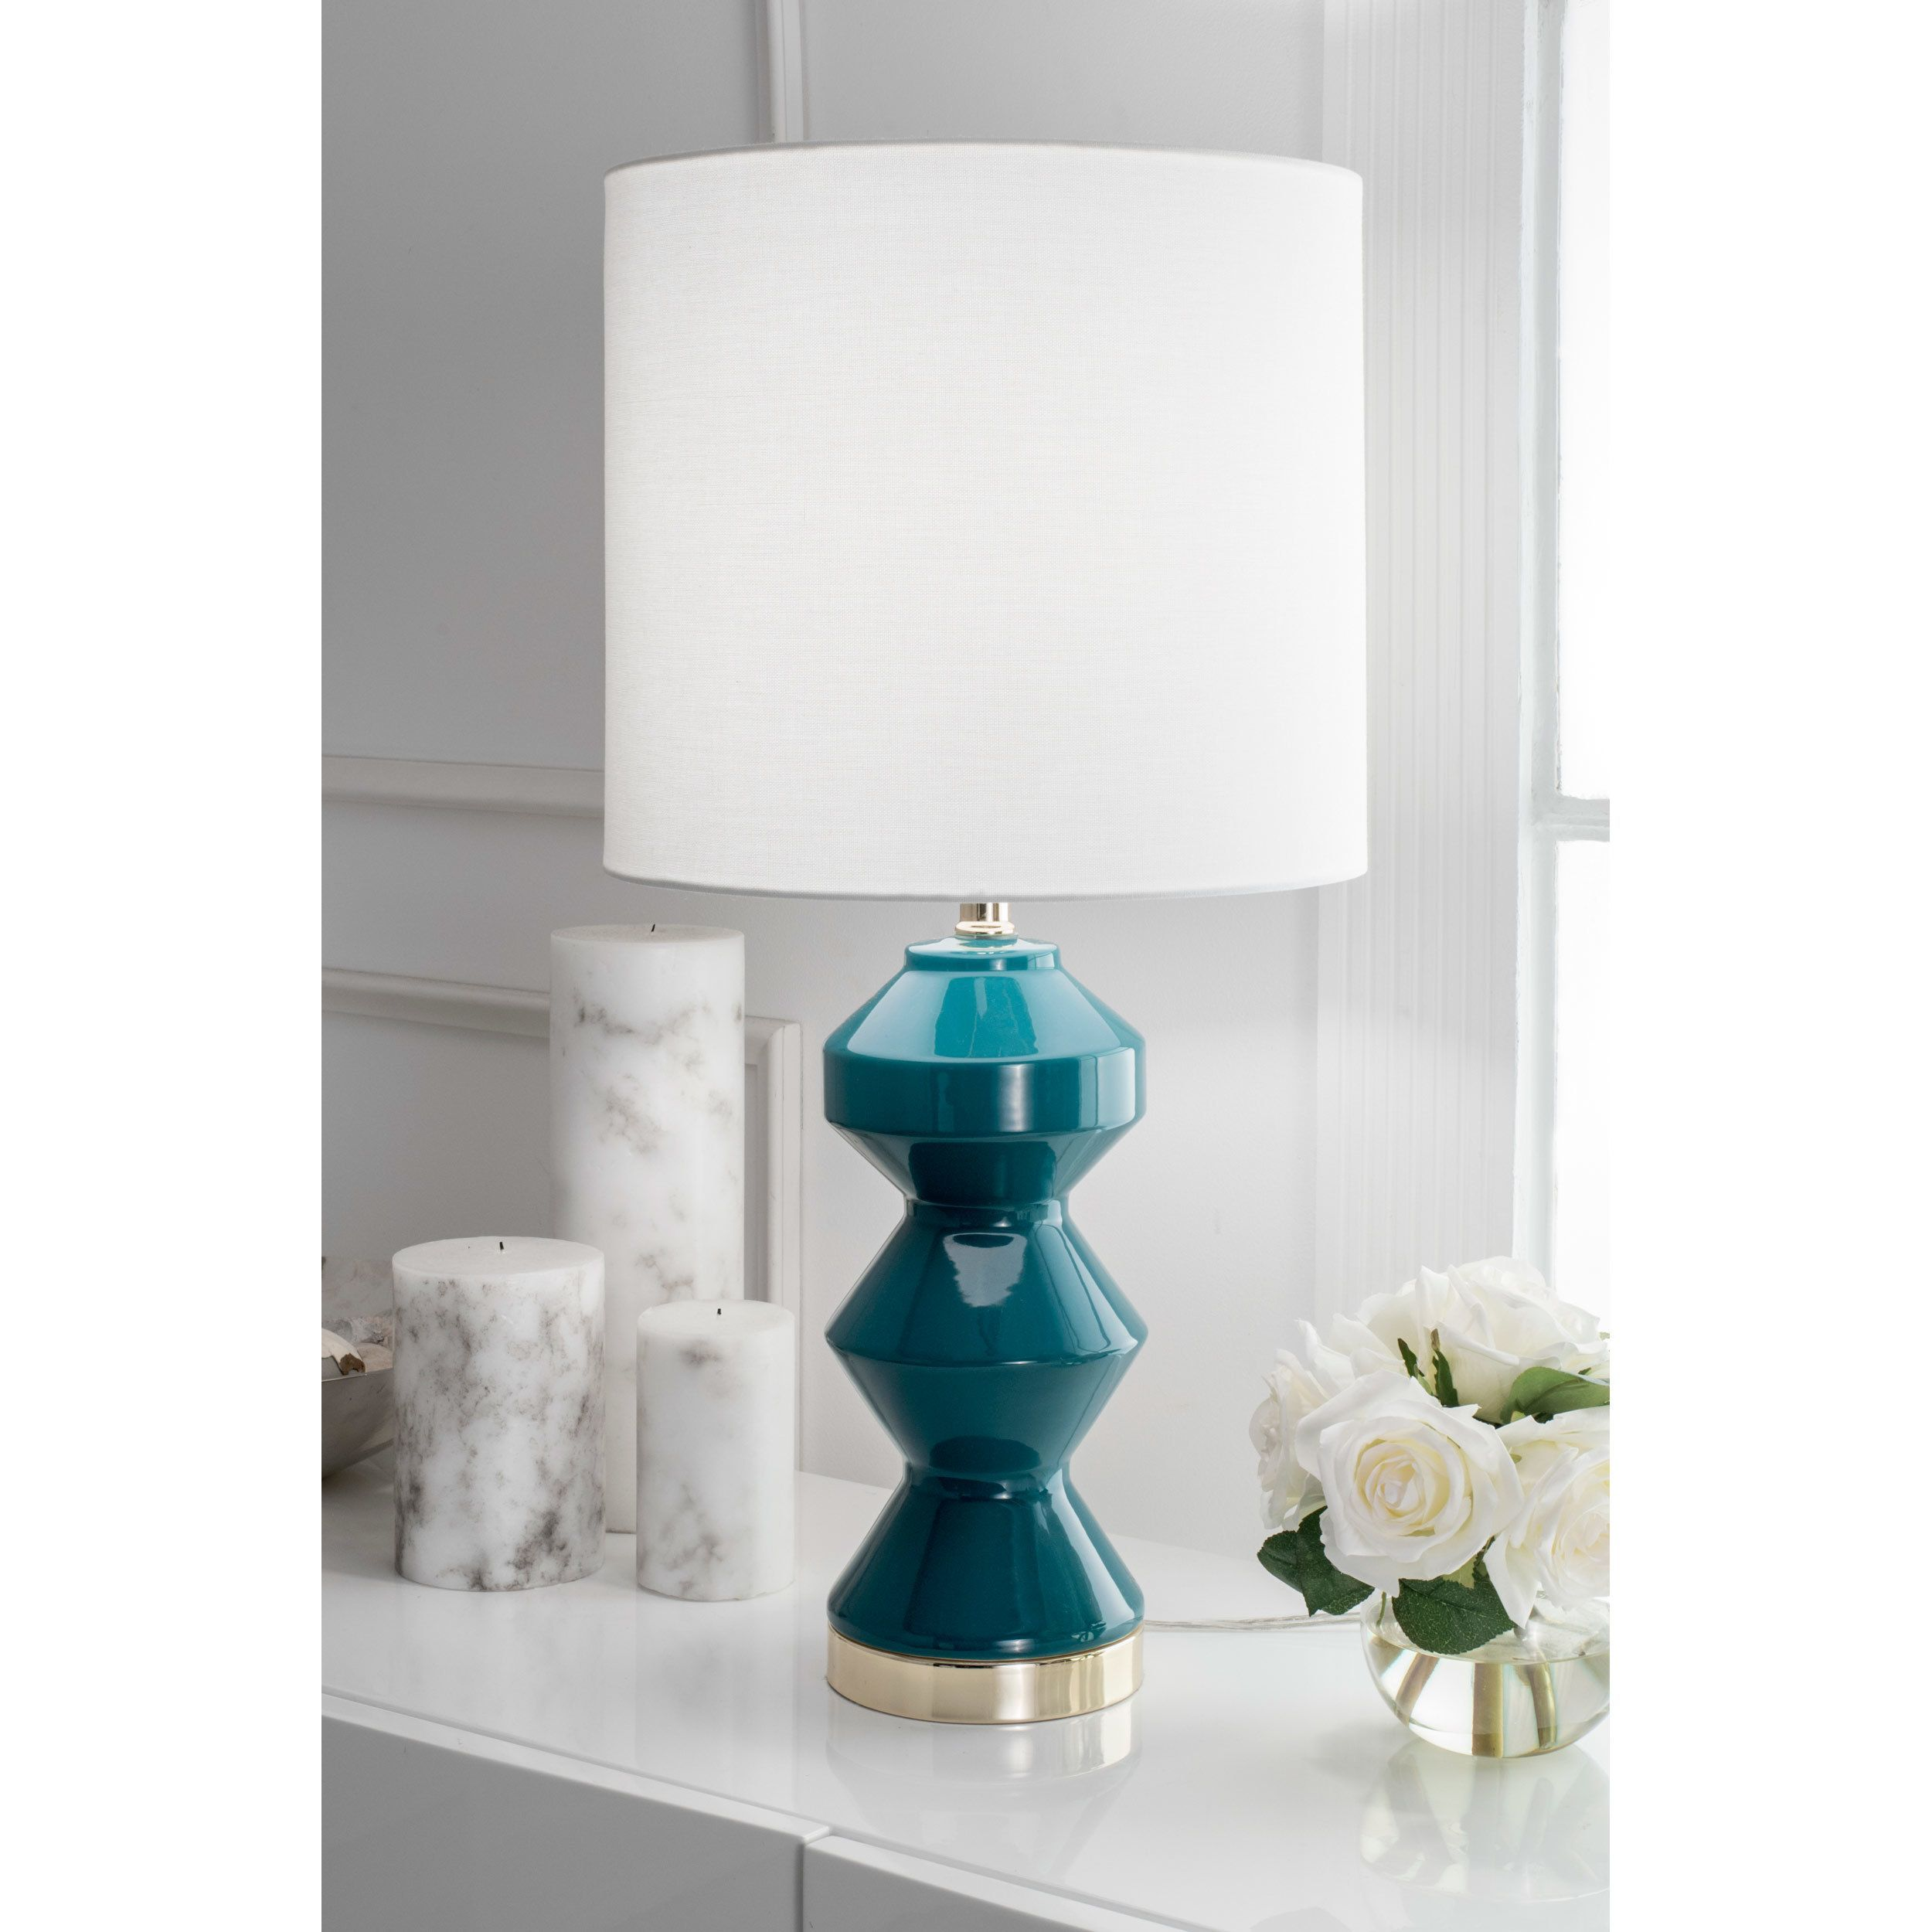 shadesmainstay lampsgreen lamps of shade astounding lamp size contemporary room full living blue green tag for ceramic table shades shadessmall photo teal design bell